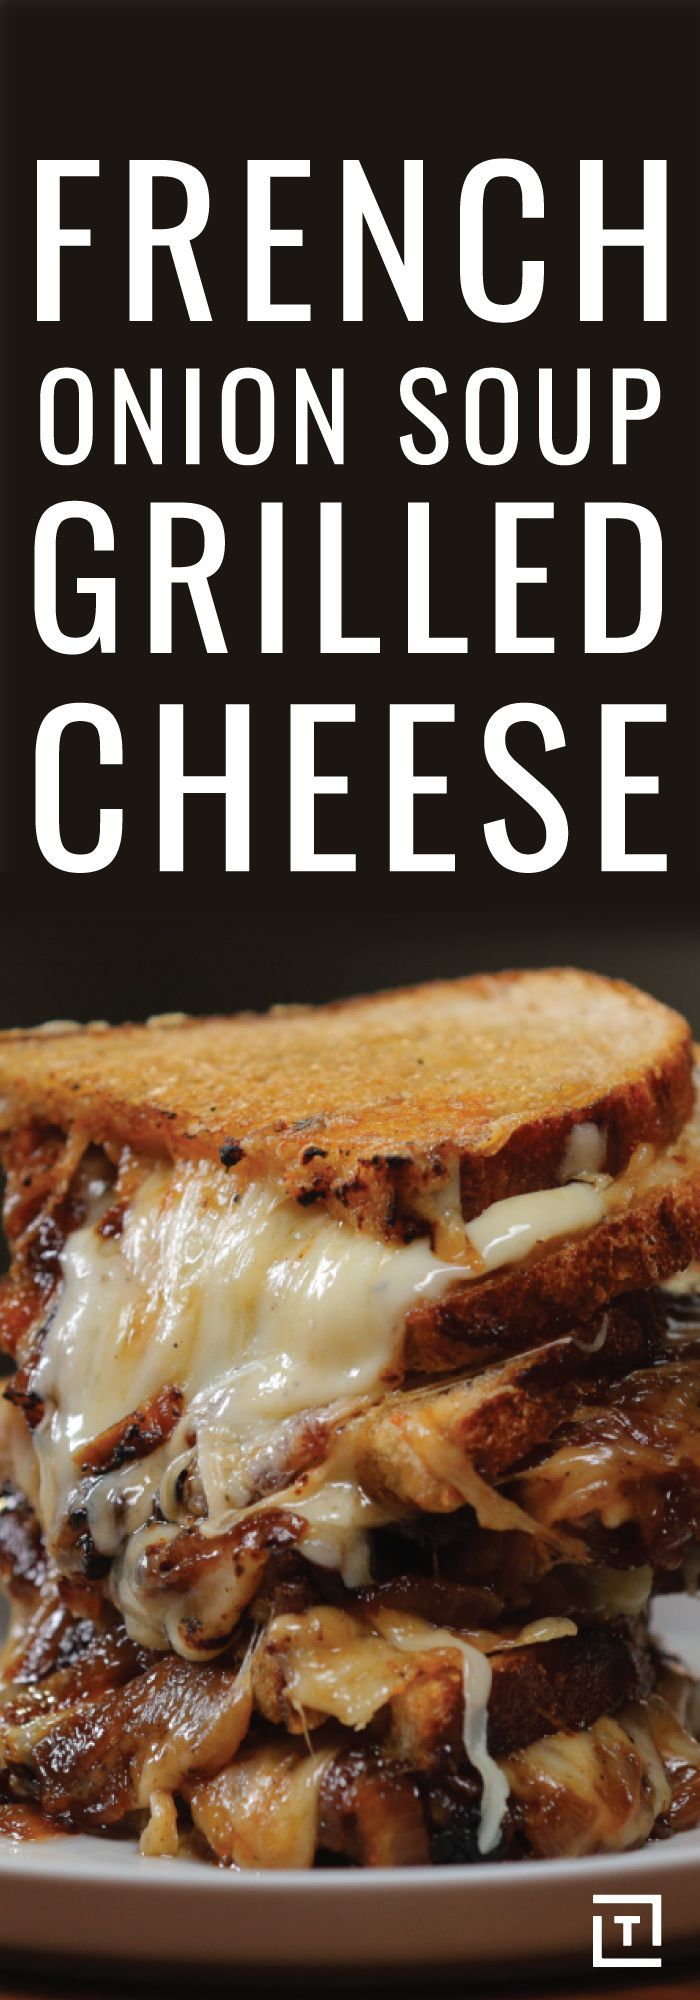 French onion soup grilled cheese! {wine glass writer}